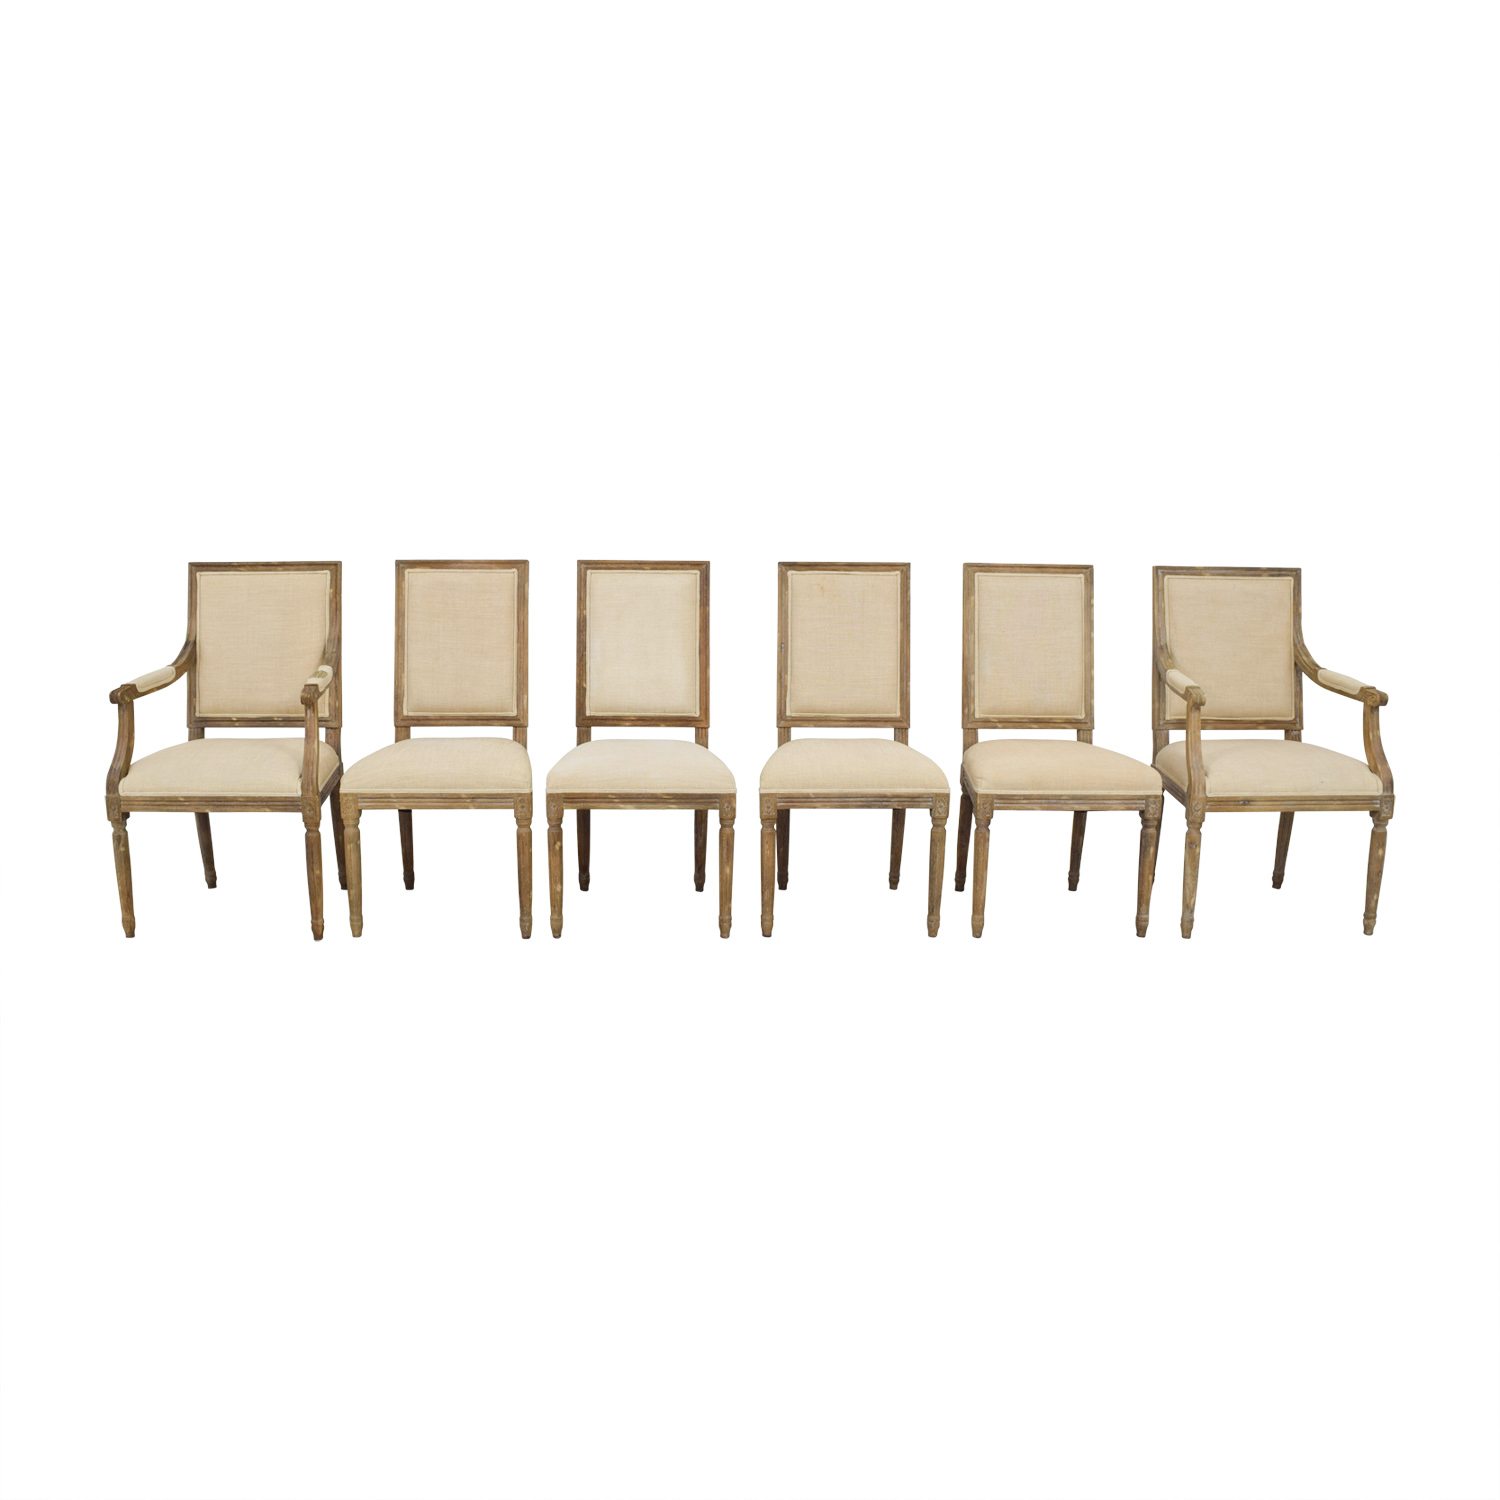 Restoration Hardware Restoration Hardware Vintage Square Chairs Dining Chairs